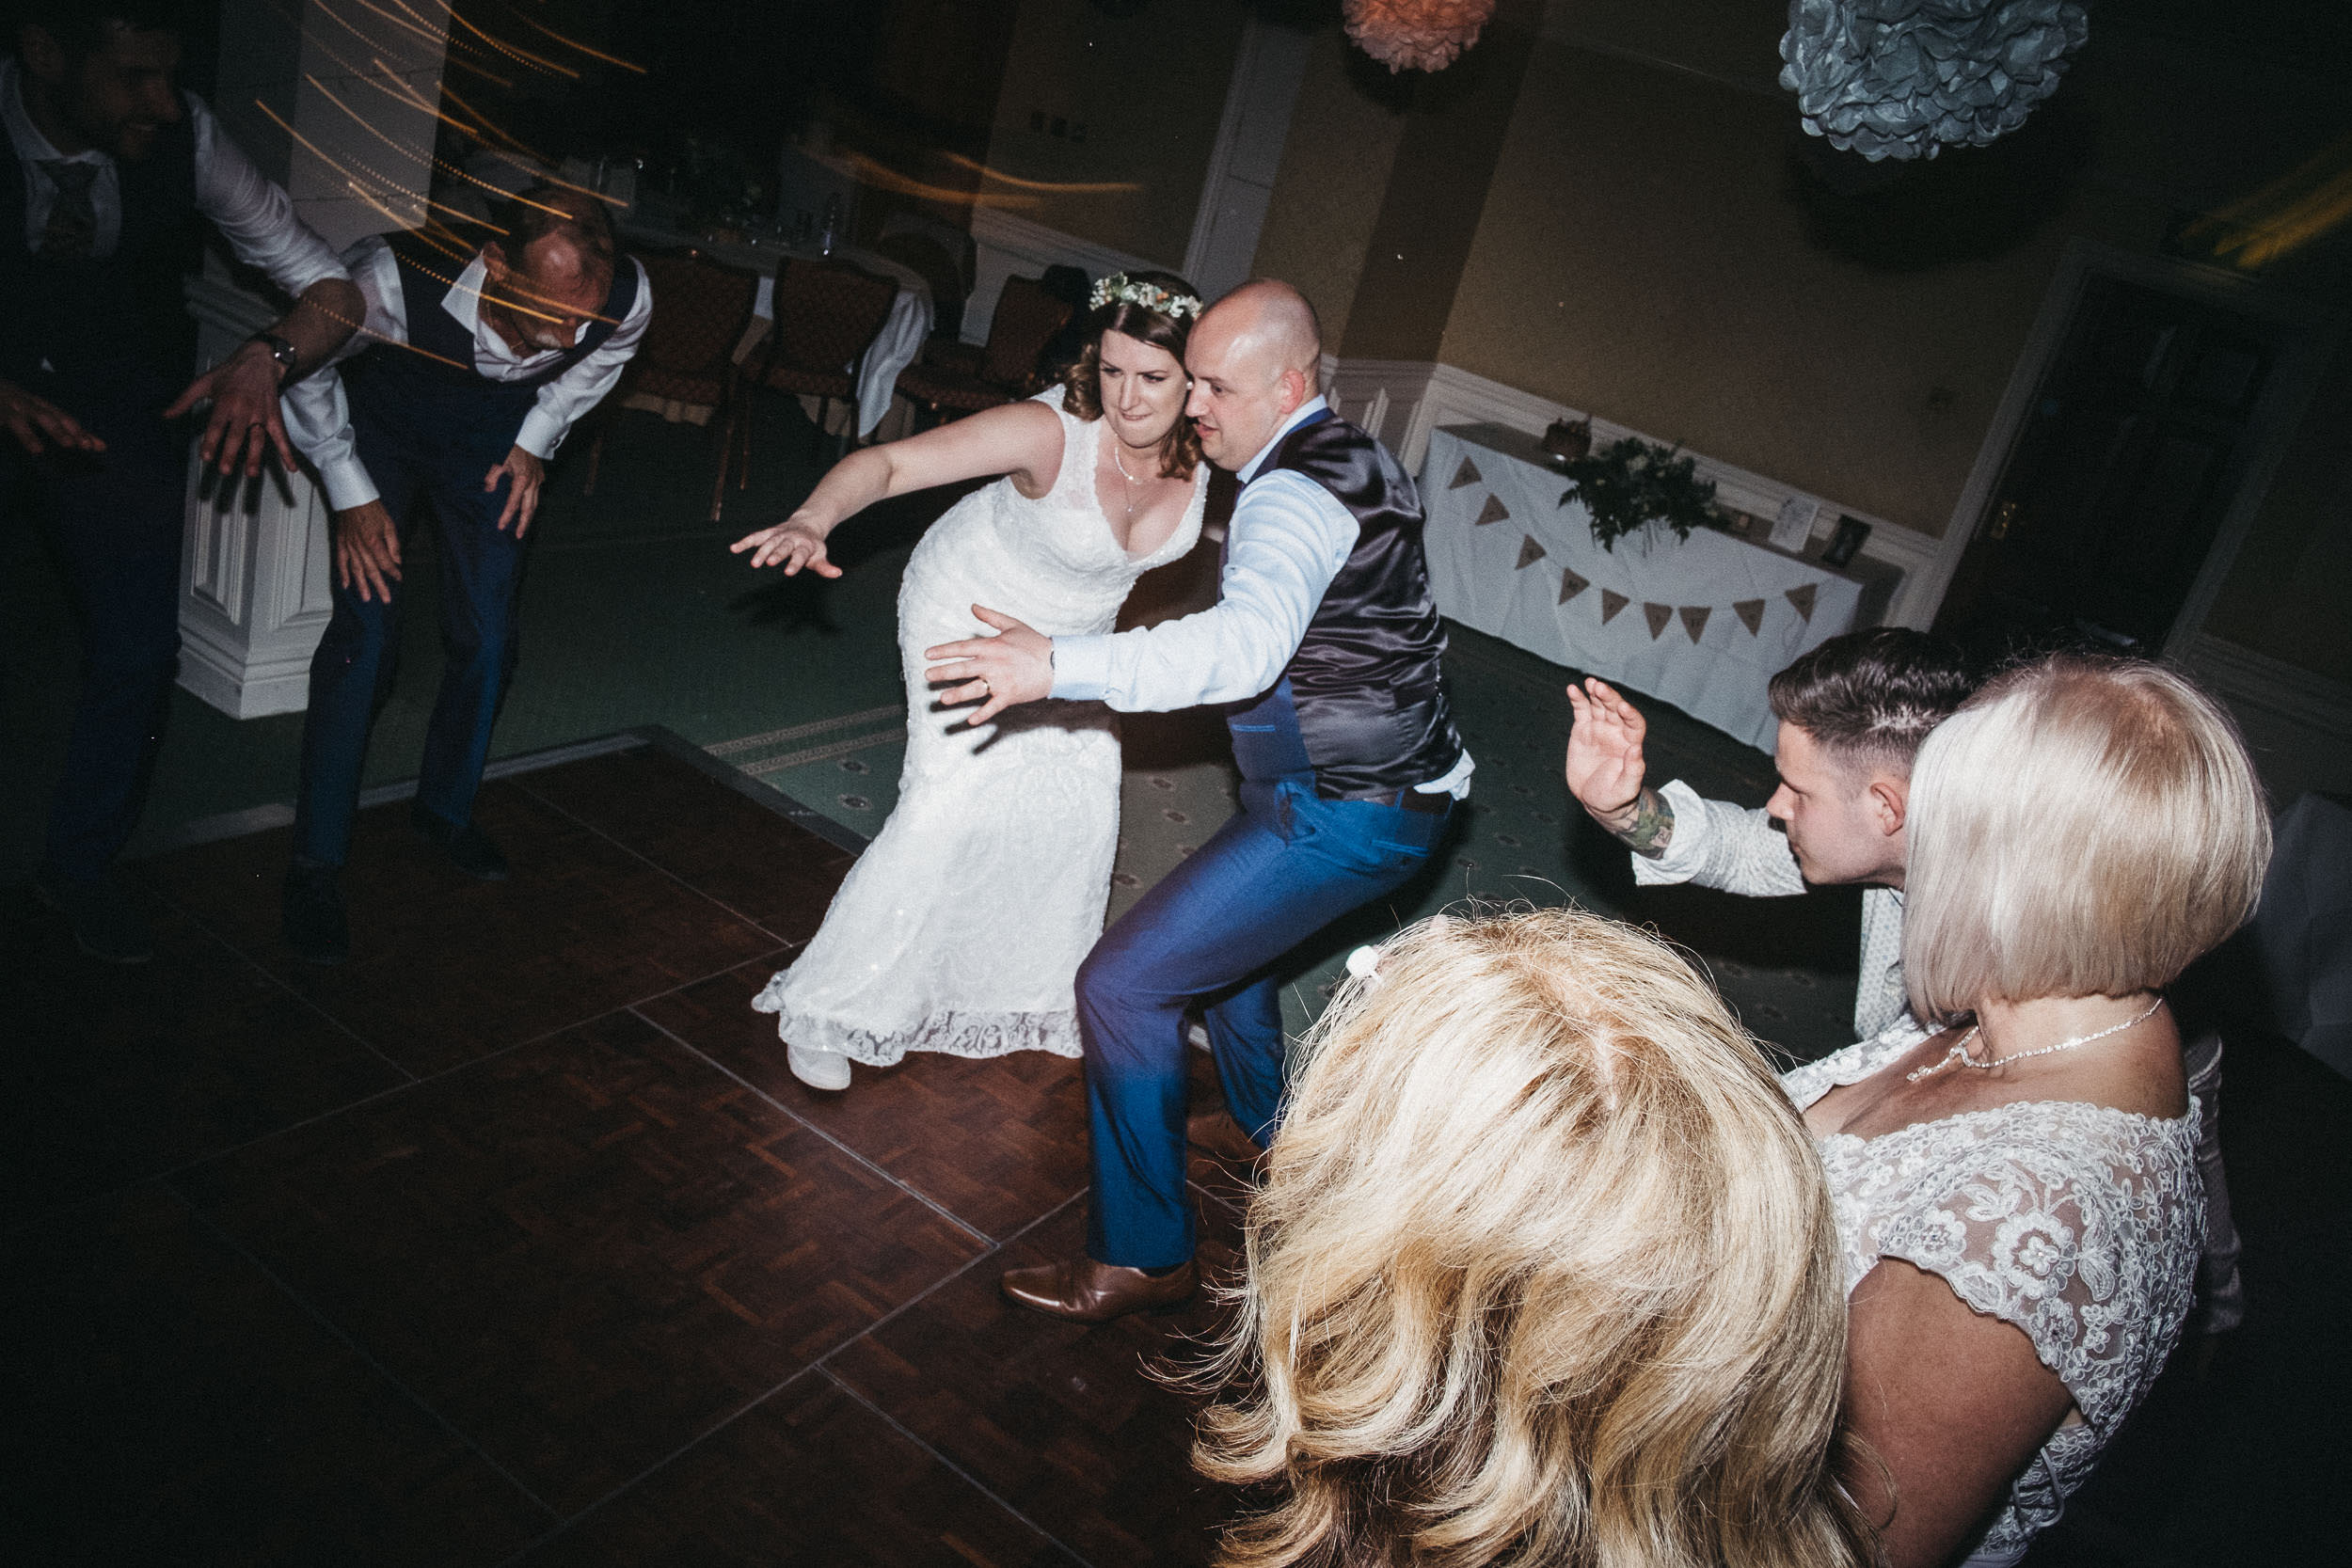 Bride and guest dancing to Praise You at wedding